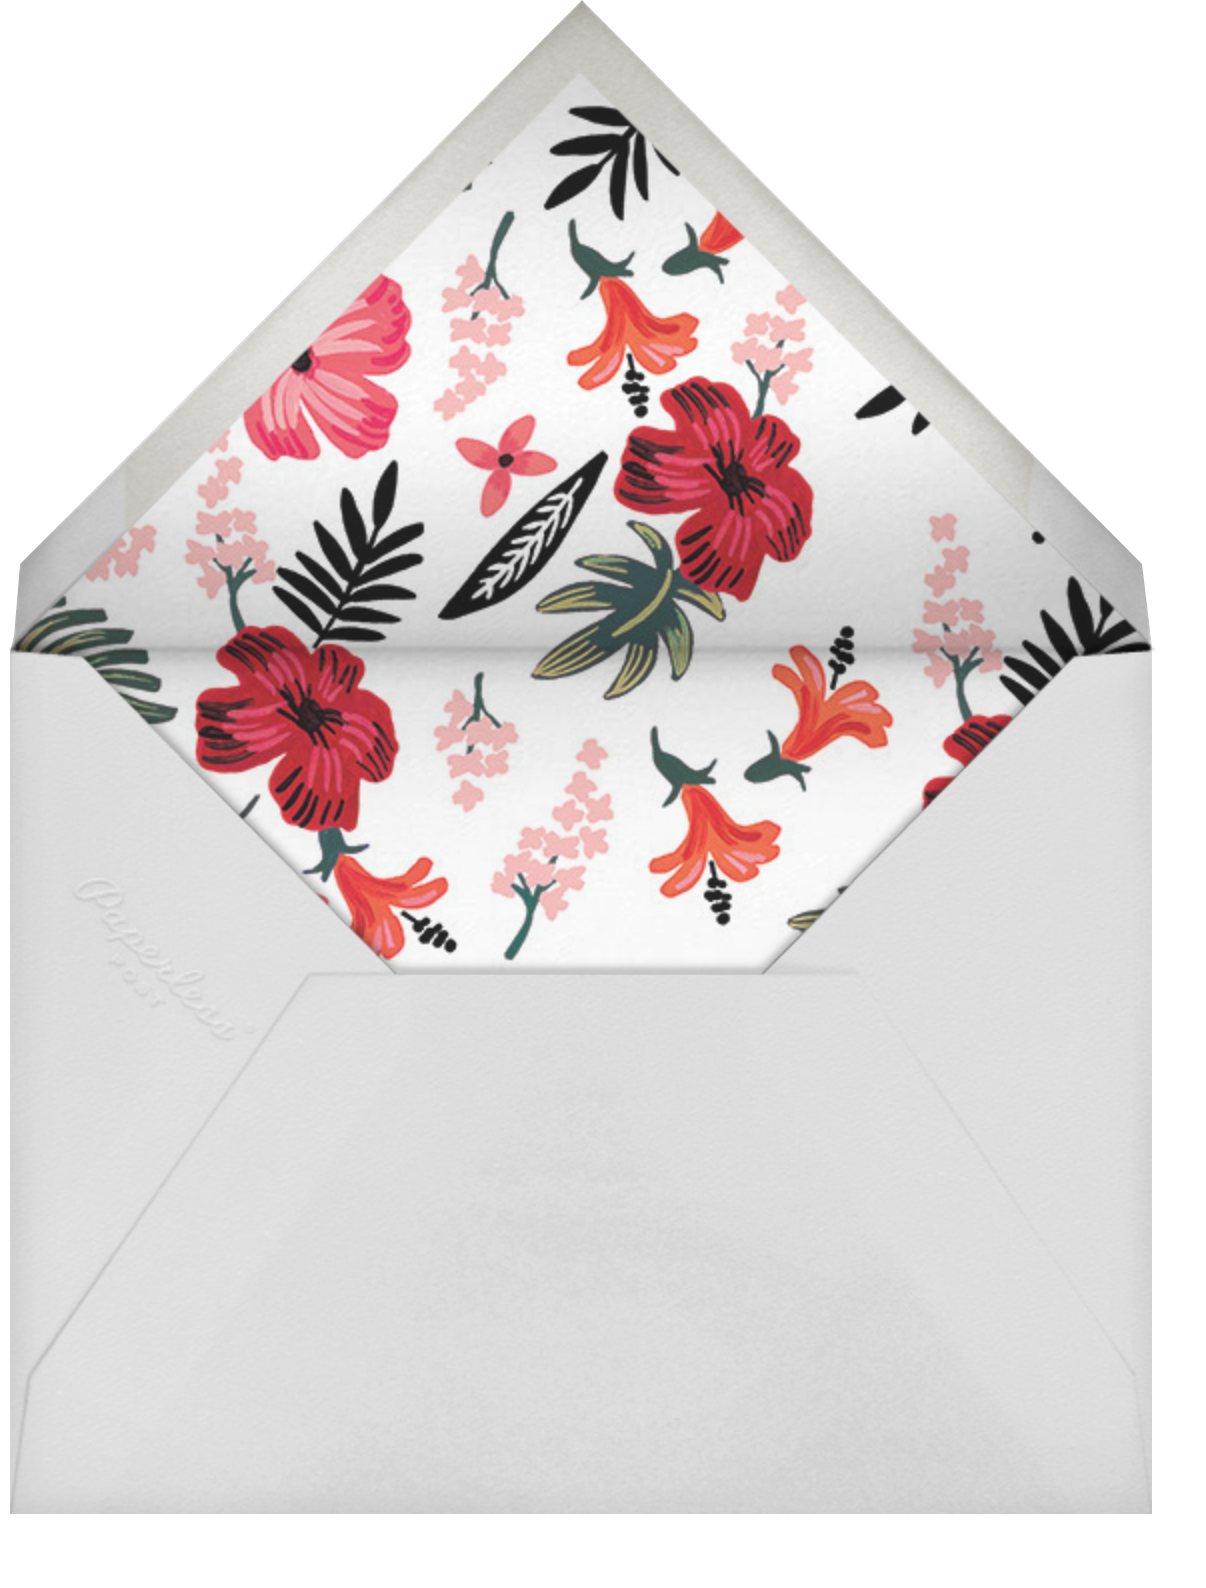 Kona Floral (Invitation) - Pavlova - Rifle Paper Co. - All - envelope back